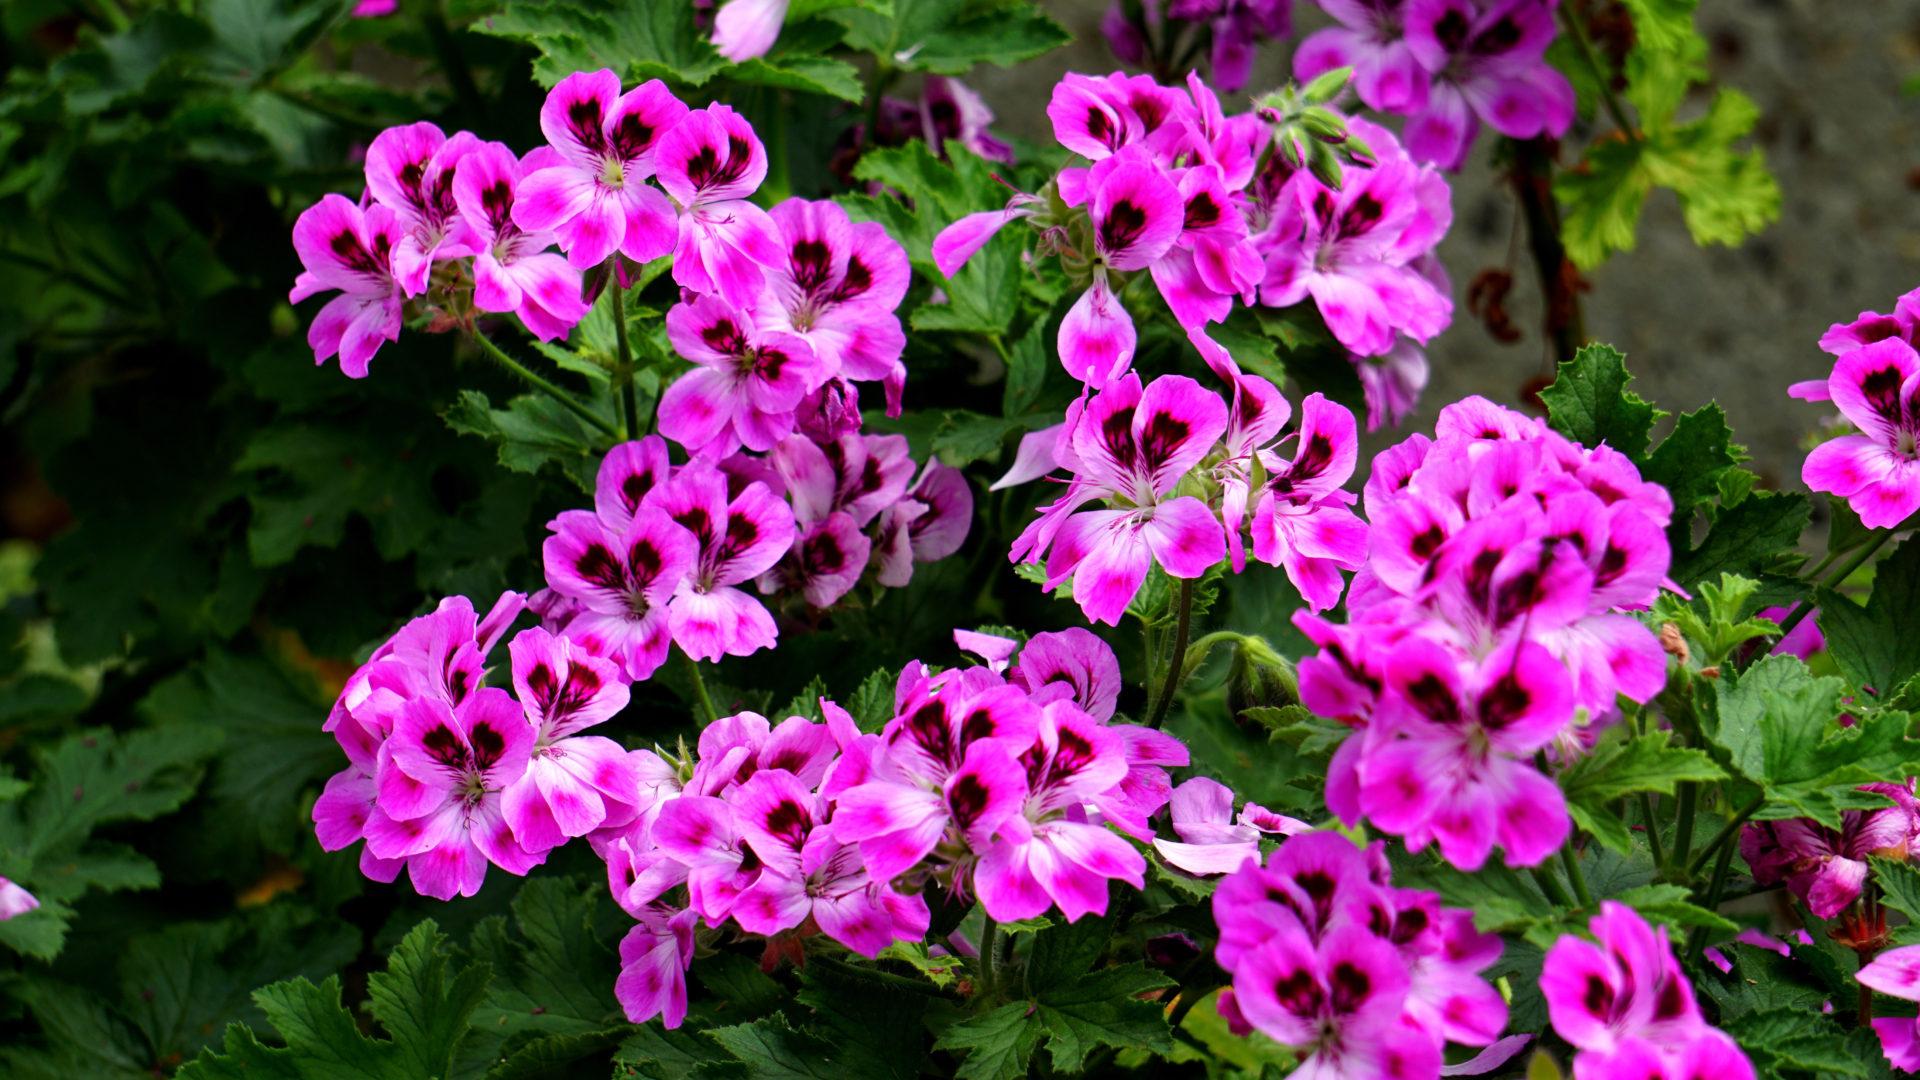 Cute Lock Screen Wallpaper For Ipad Flowers With Beautiful Pink Color Ultra Hd Wallpapers For